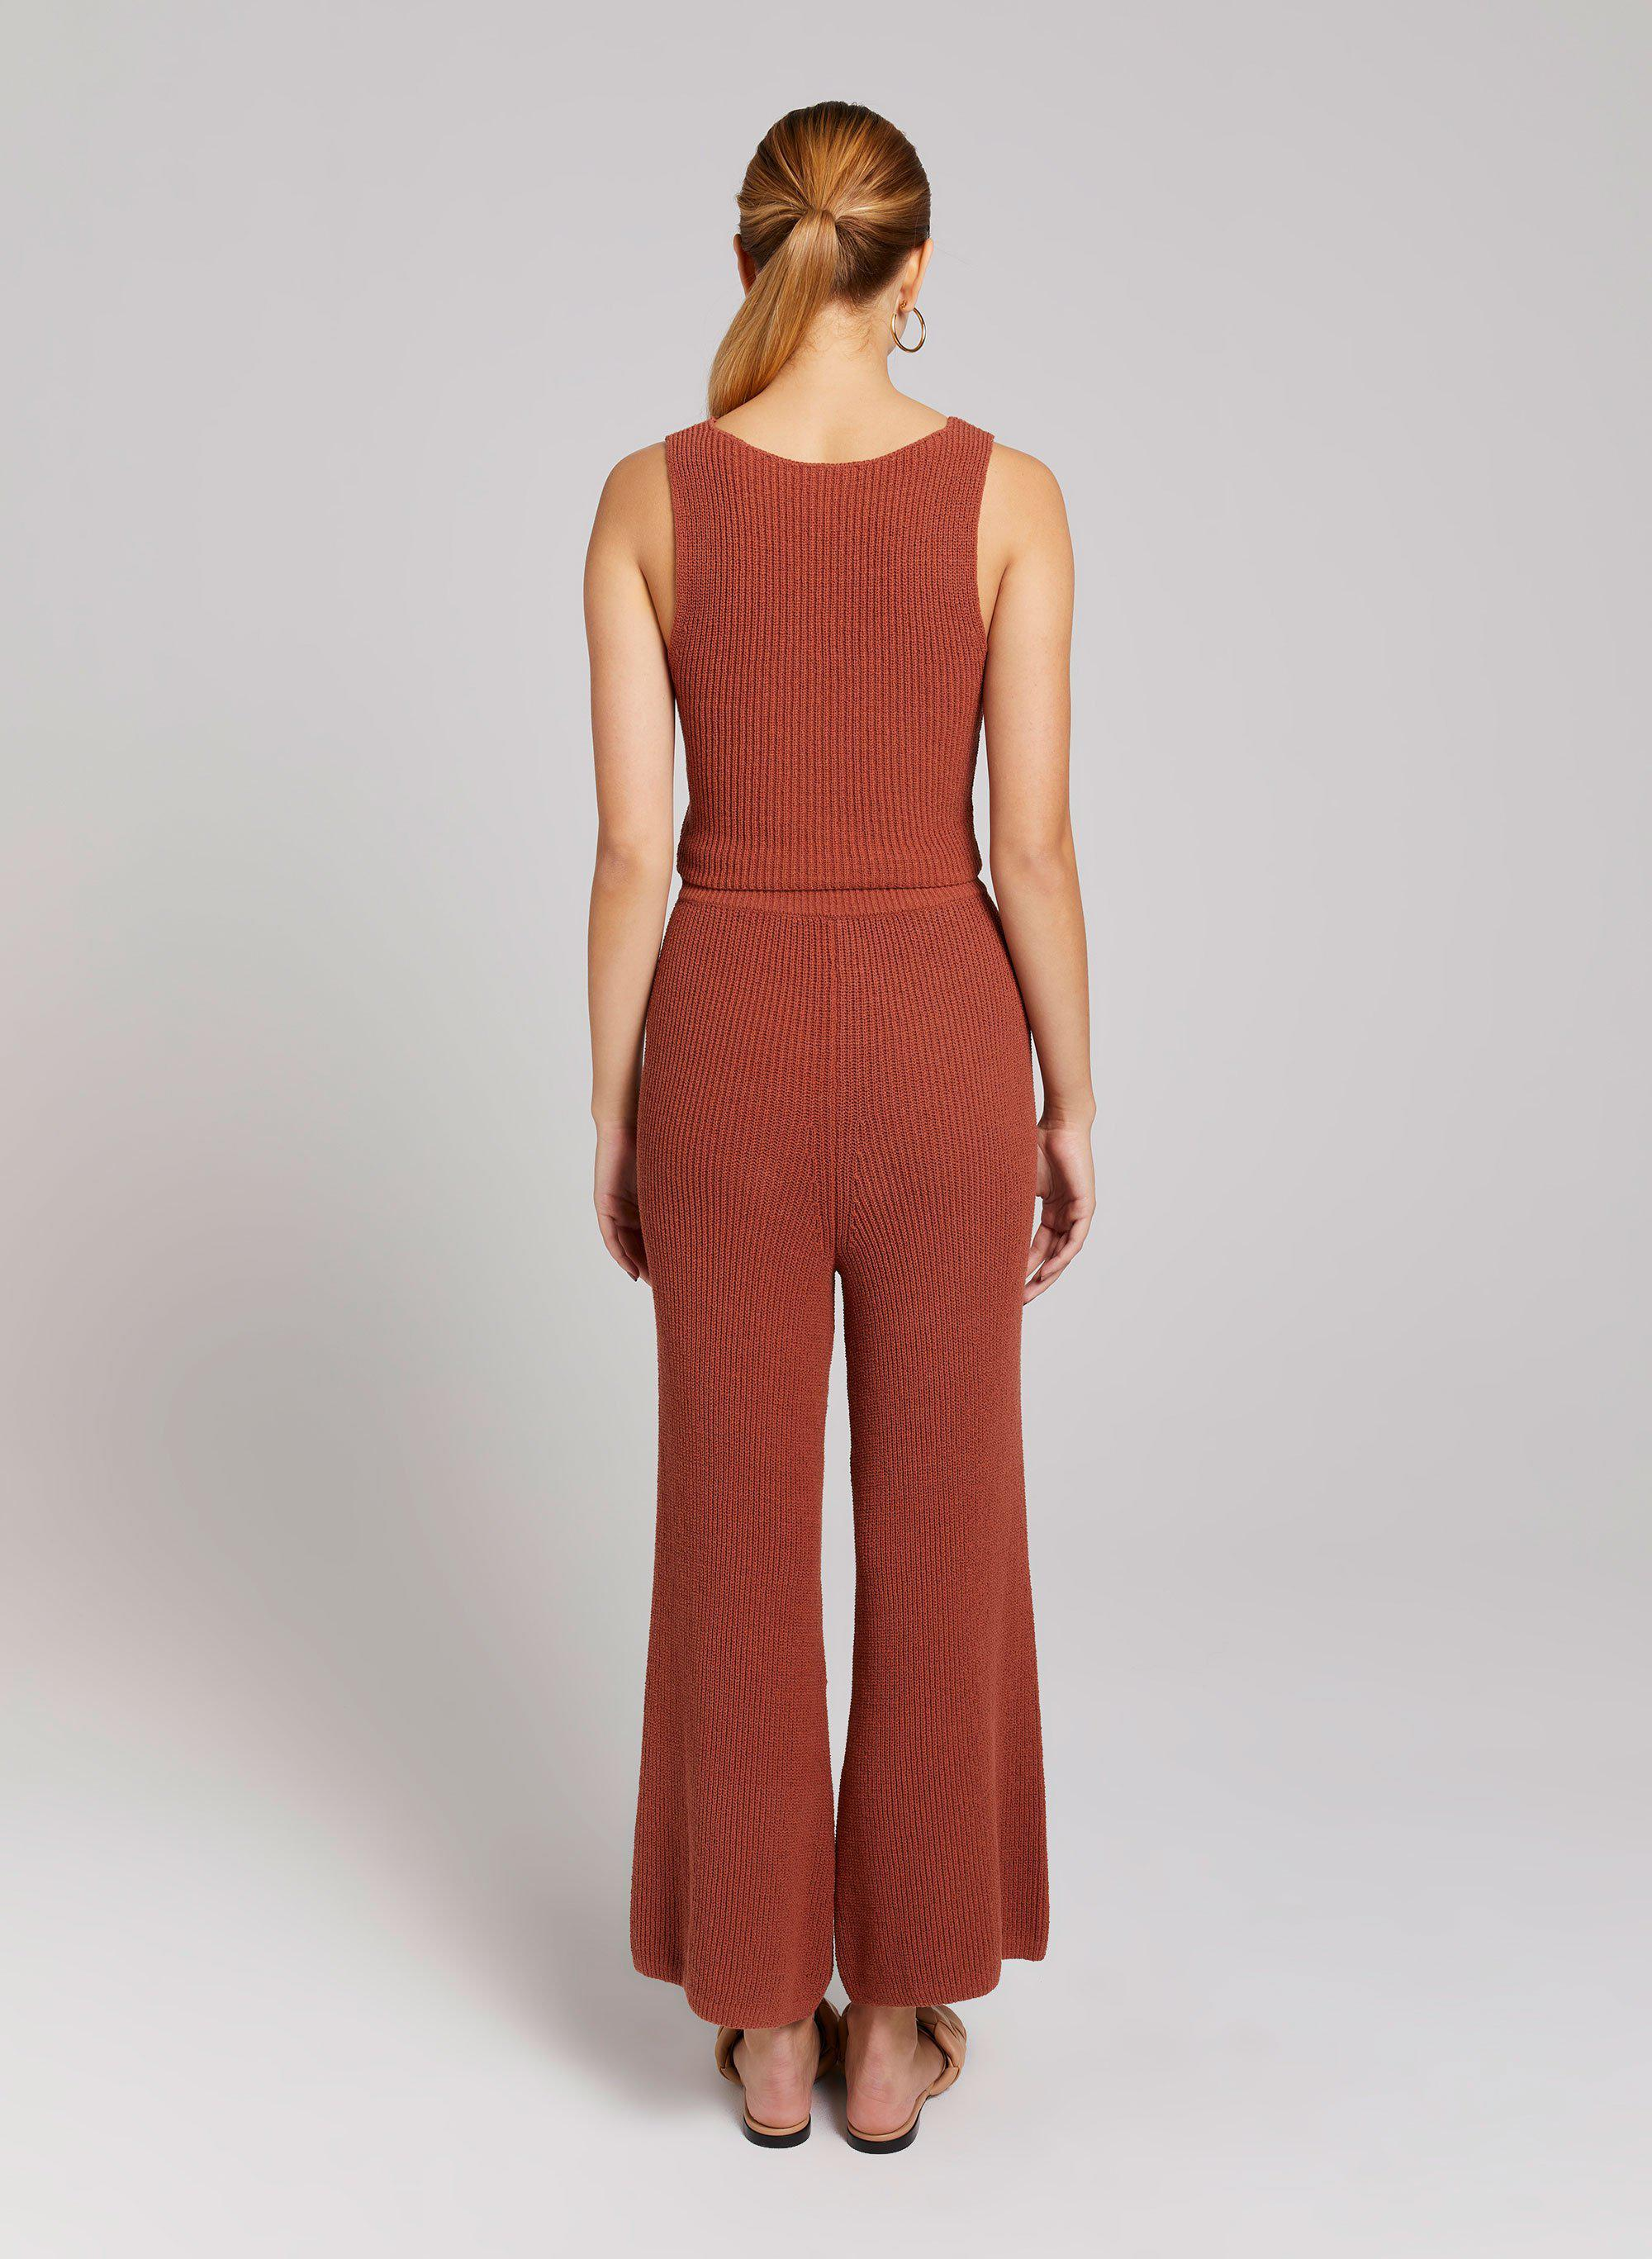 Martell Knit Pant 2